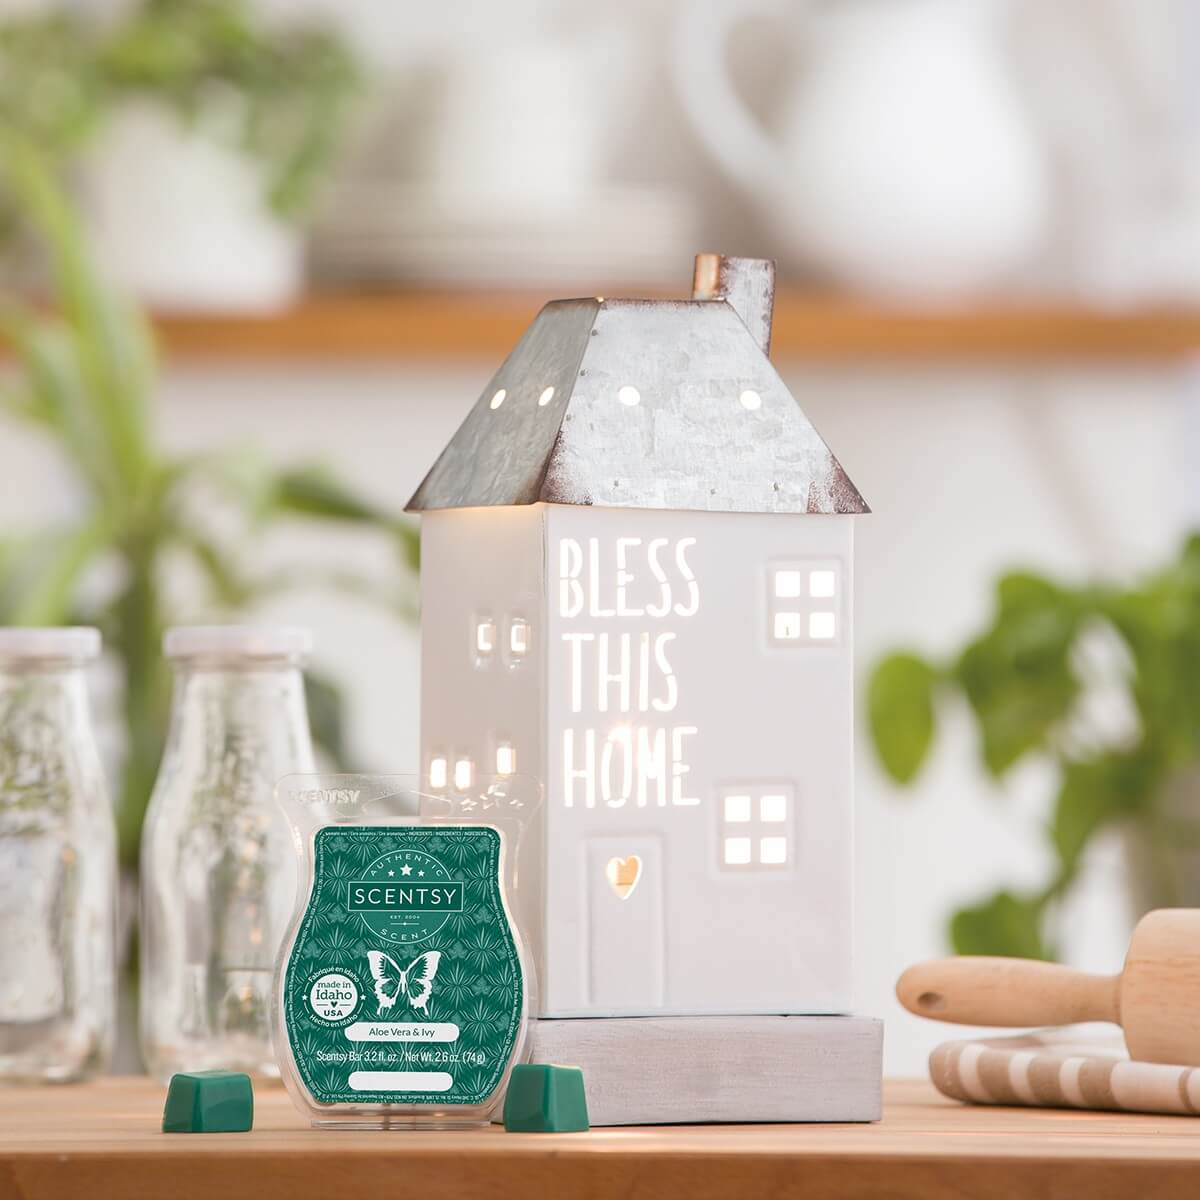 BLESS THIS HOME SCENTSY WARMER| SCENTSY SEPTEMBER 2020 WARMER & SCENT OF THE MONTH - UNDER WRAPS MUMMY SCENTSY WARMERS & GHOSTLY GREETINGS